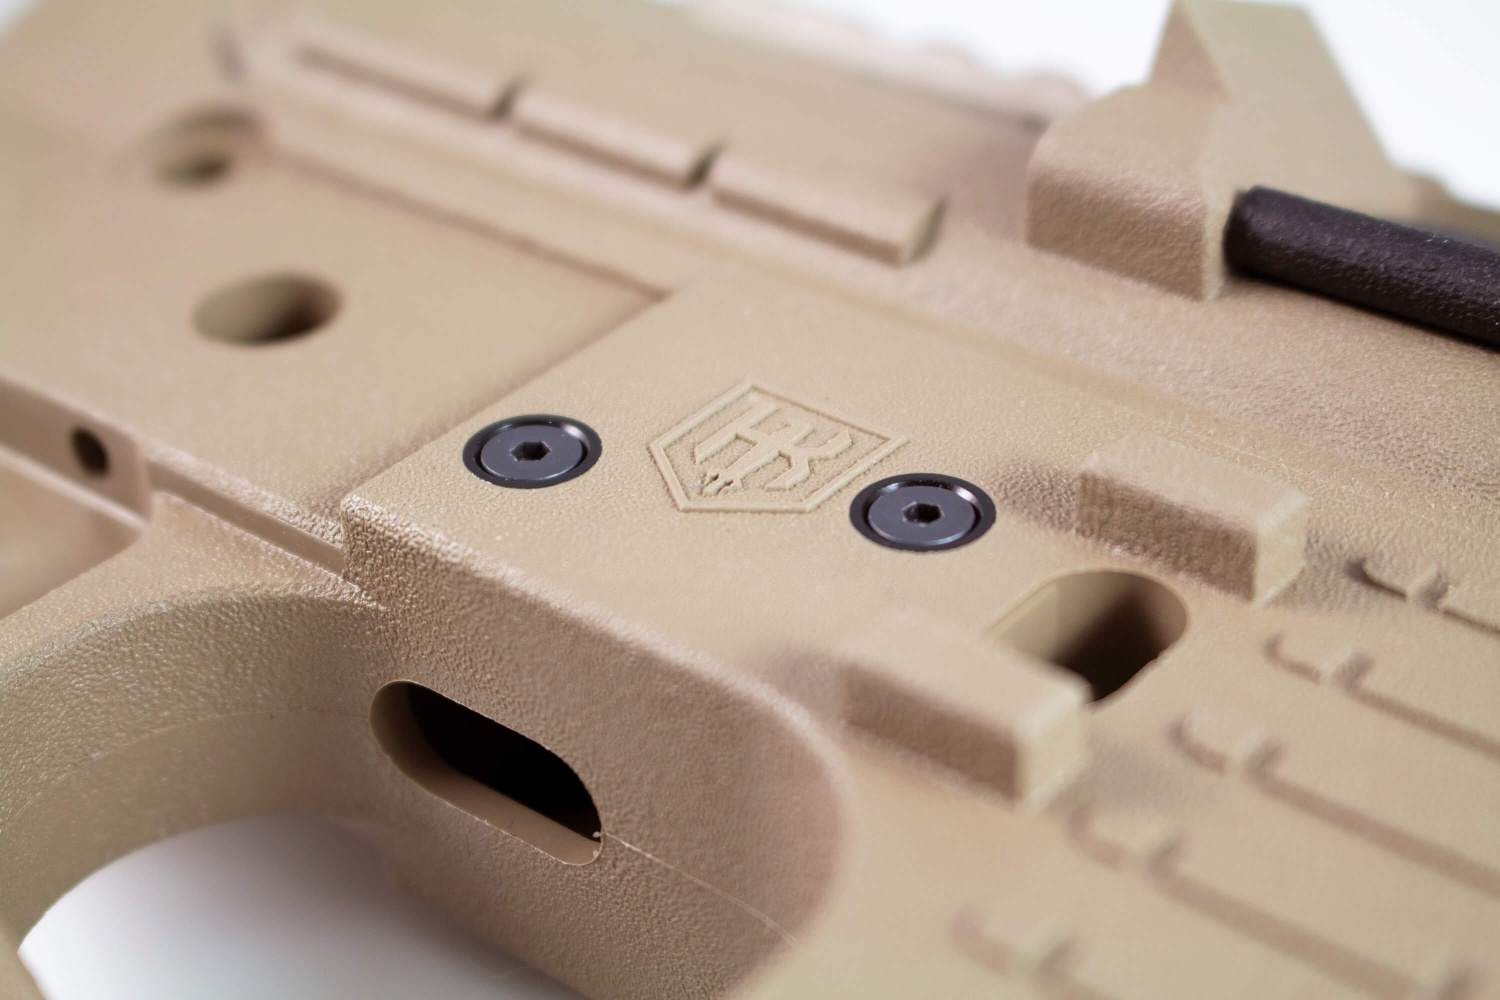 New V.2 Polymer AR-15 Receiver Sets by Kaiser Shooting Products (7)